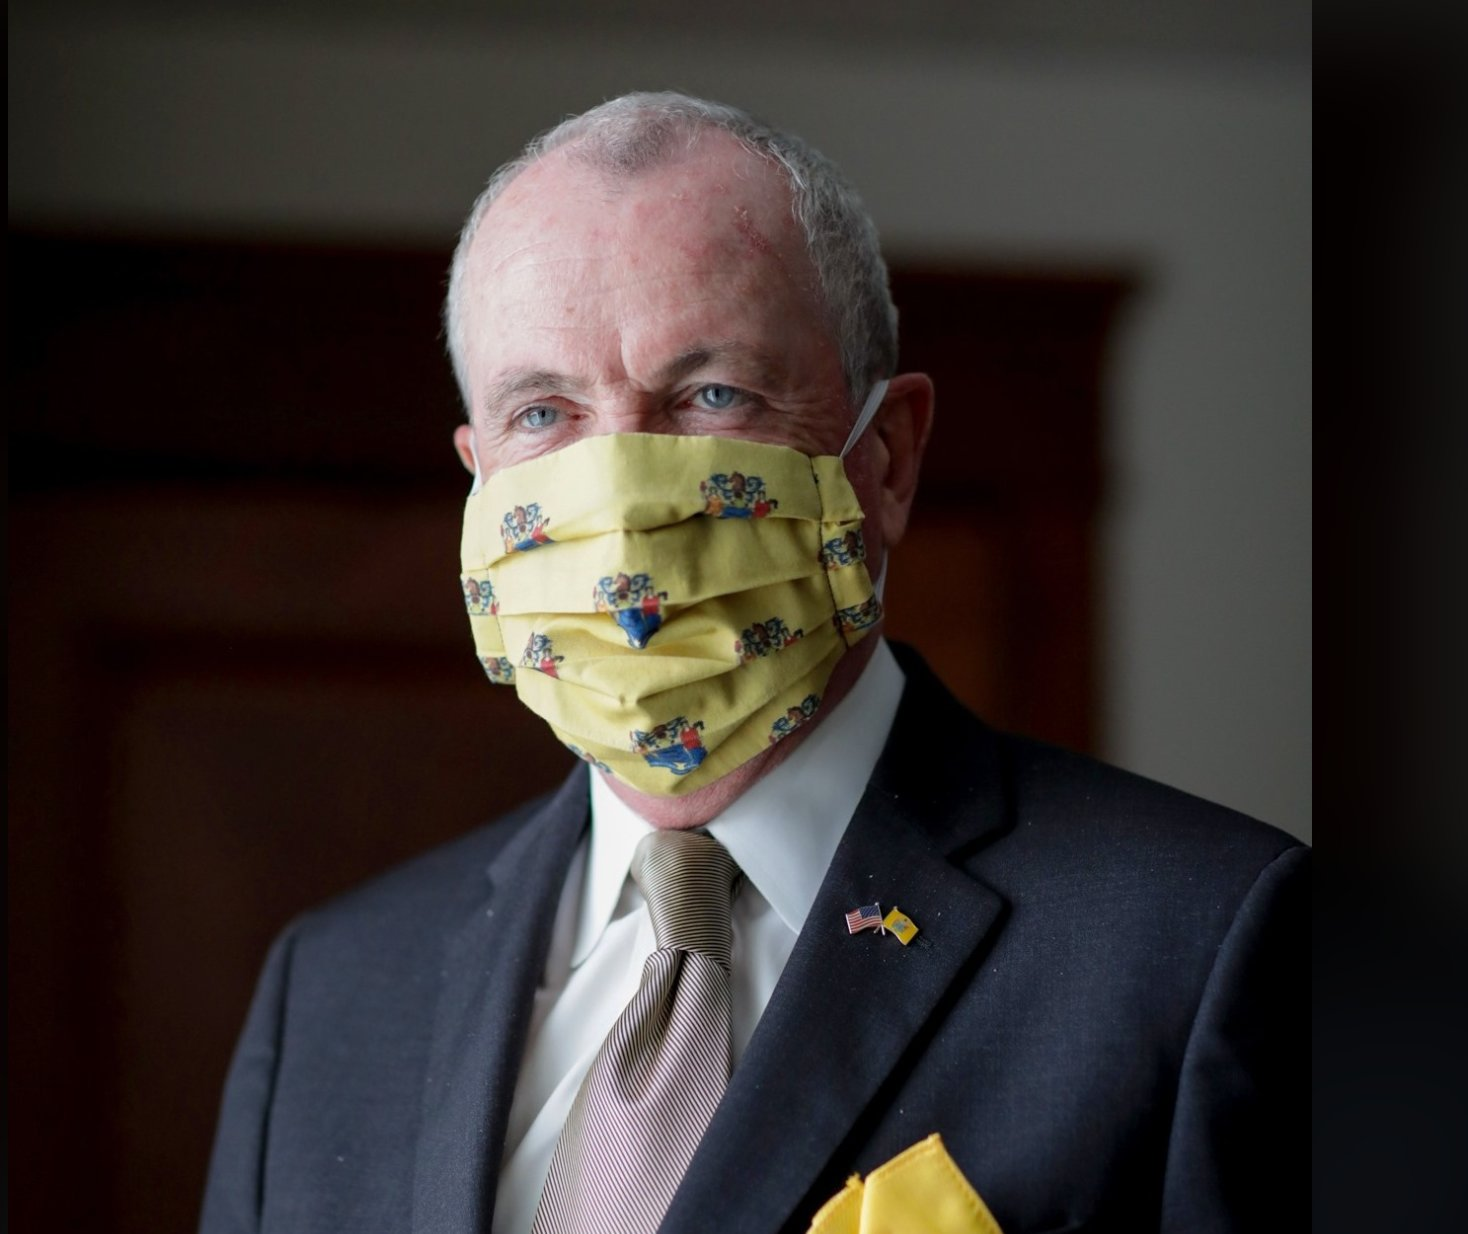 Governor Murphy sports a matching and optimistic yellow pocket square and mask.